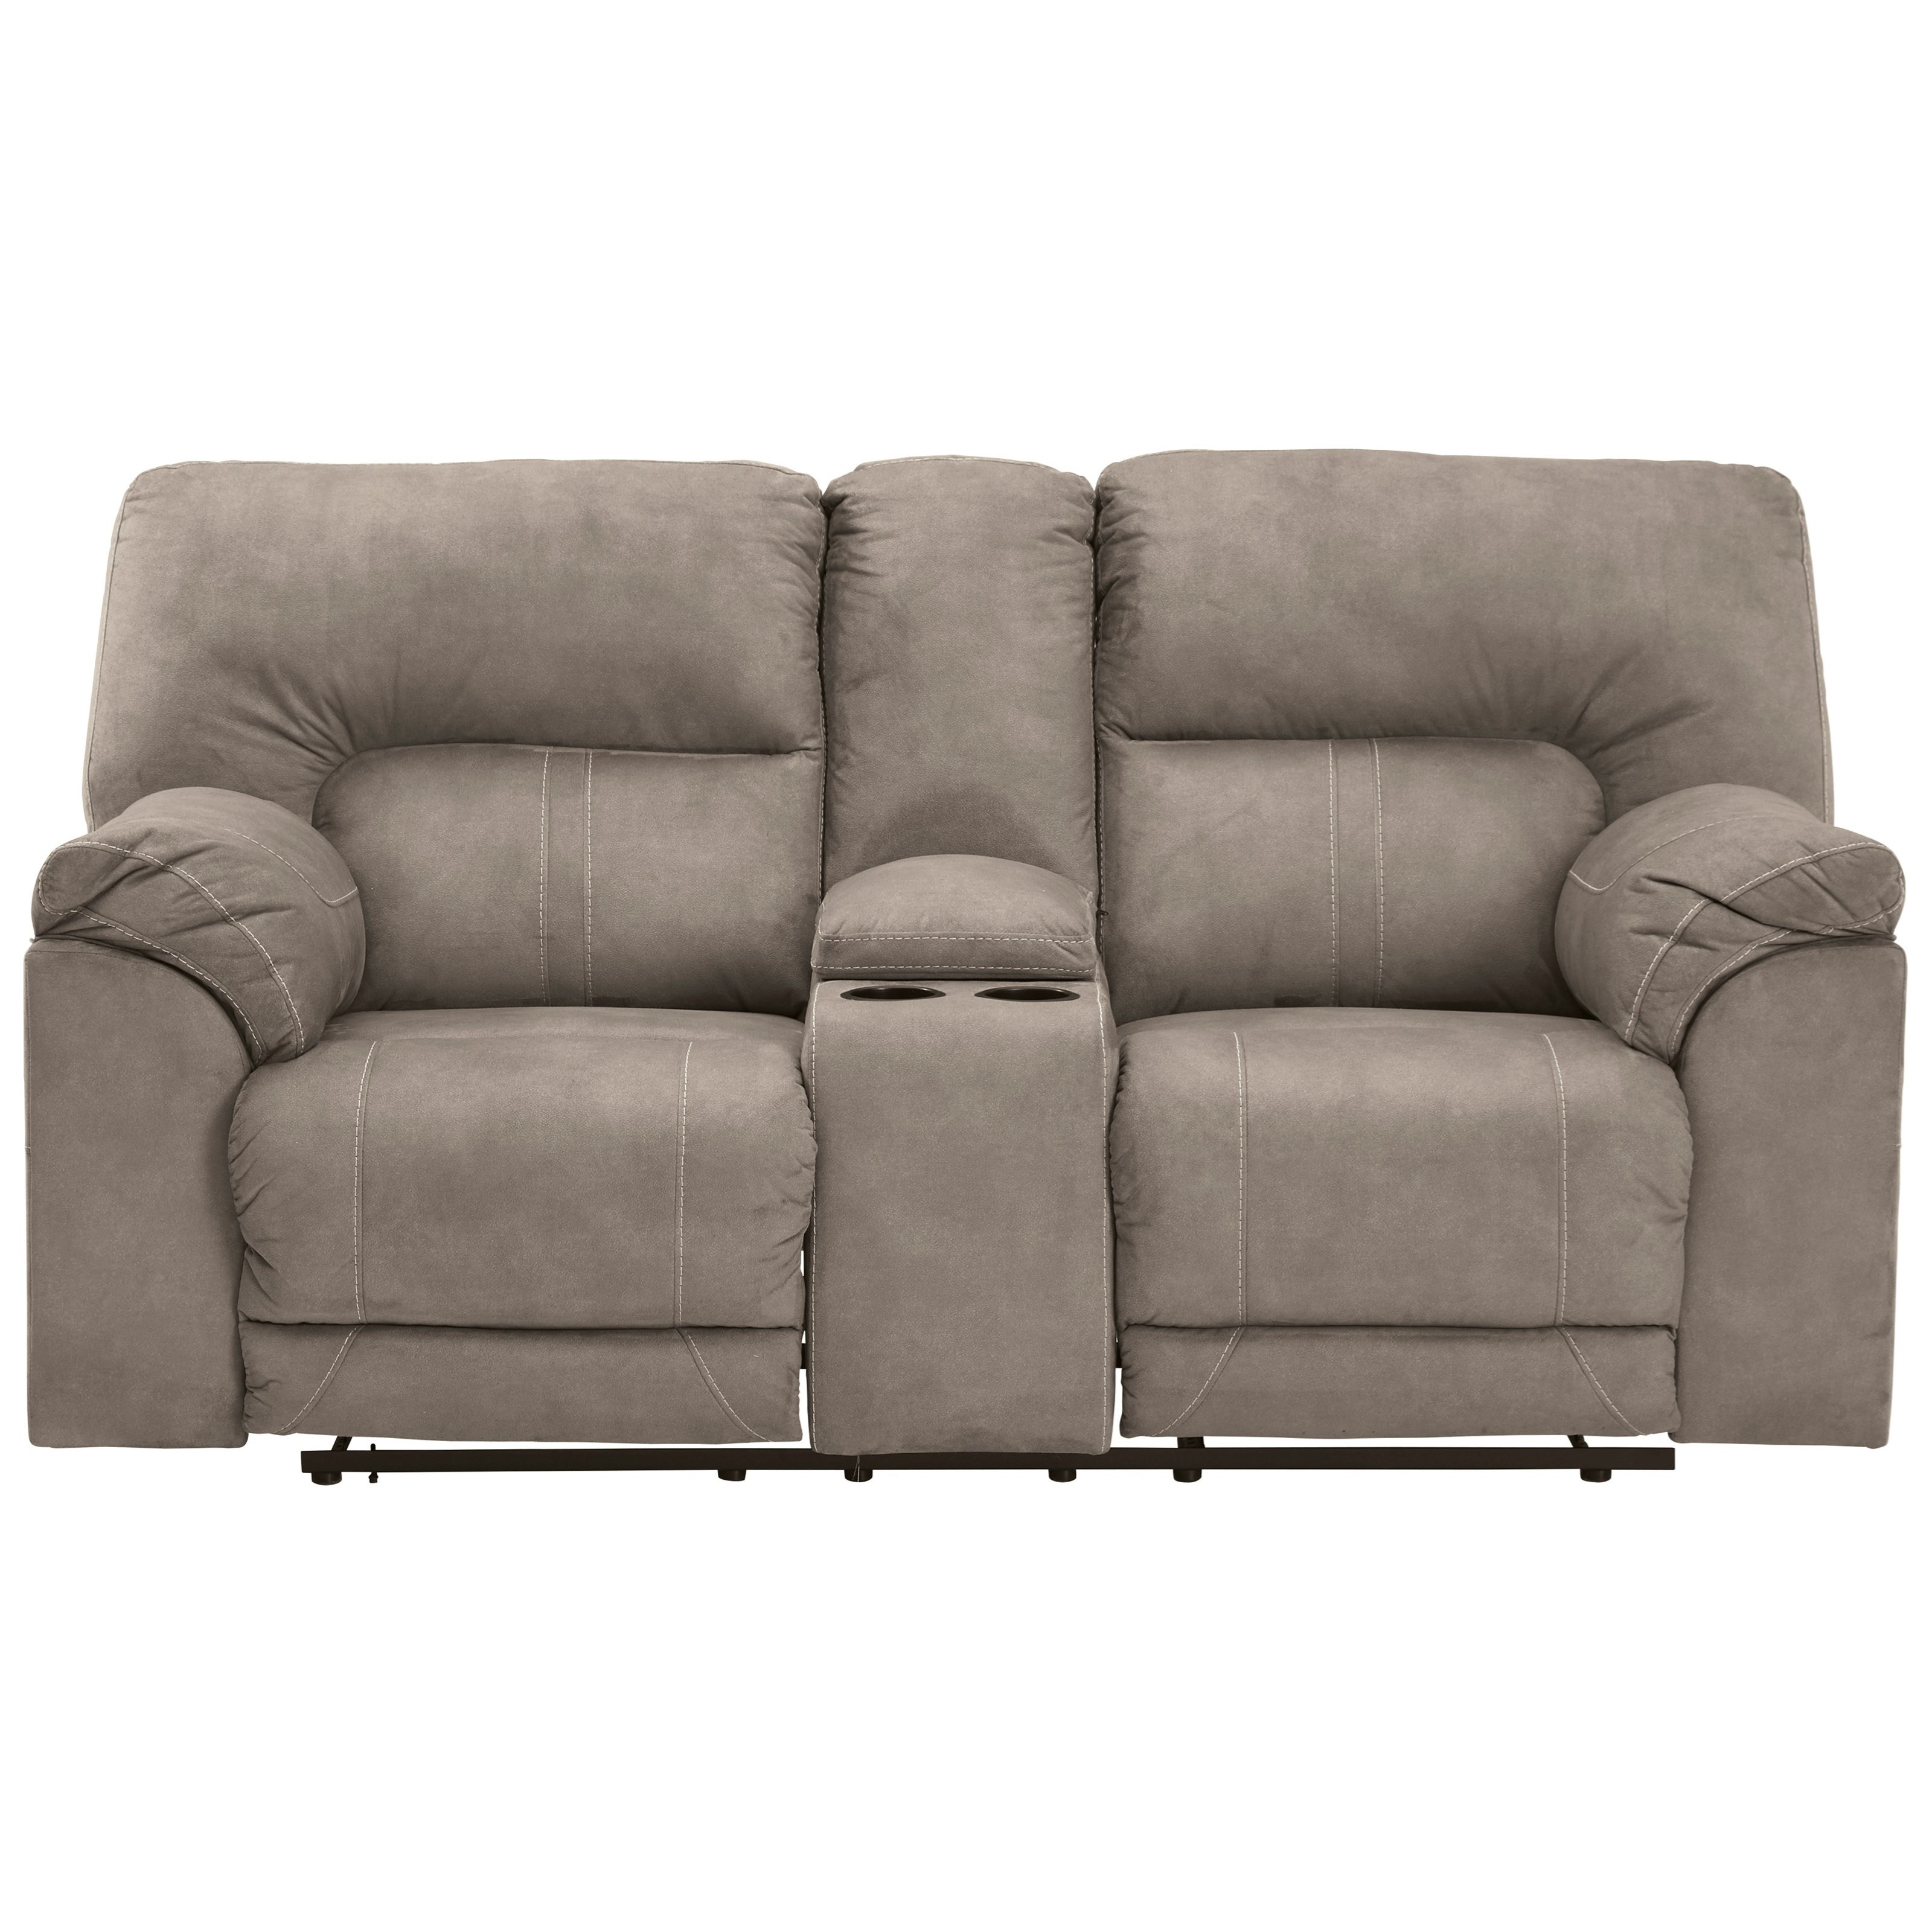 Cavalcade Double Reclining Loveseat with Console by Benchcraft at Zak's Warehouse Clearance Center